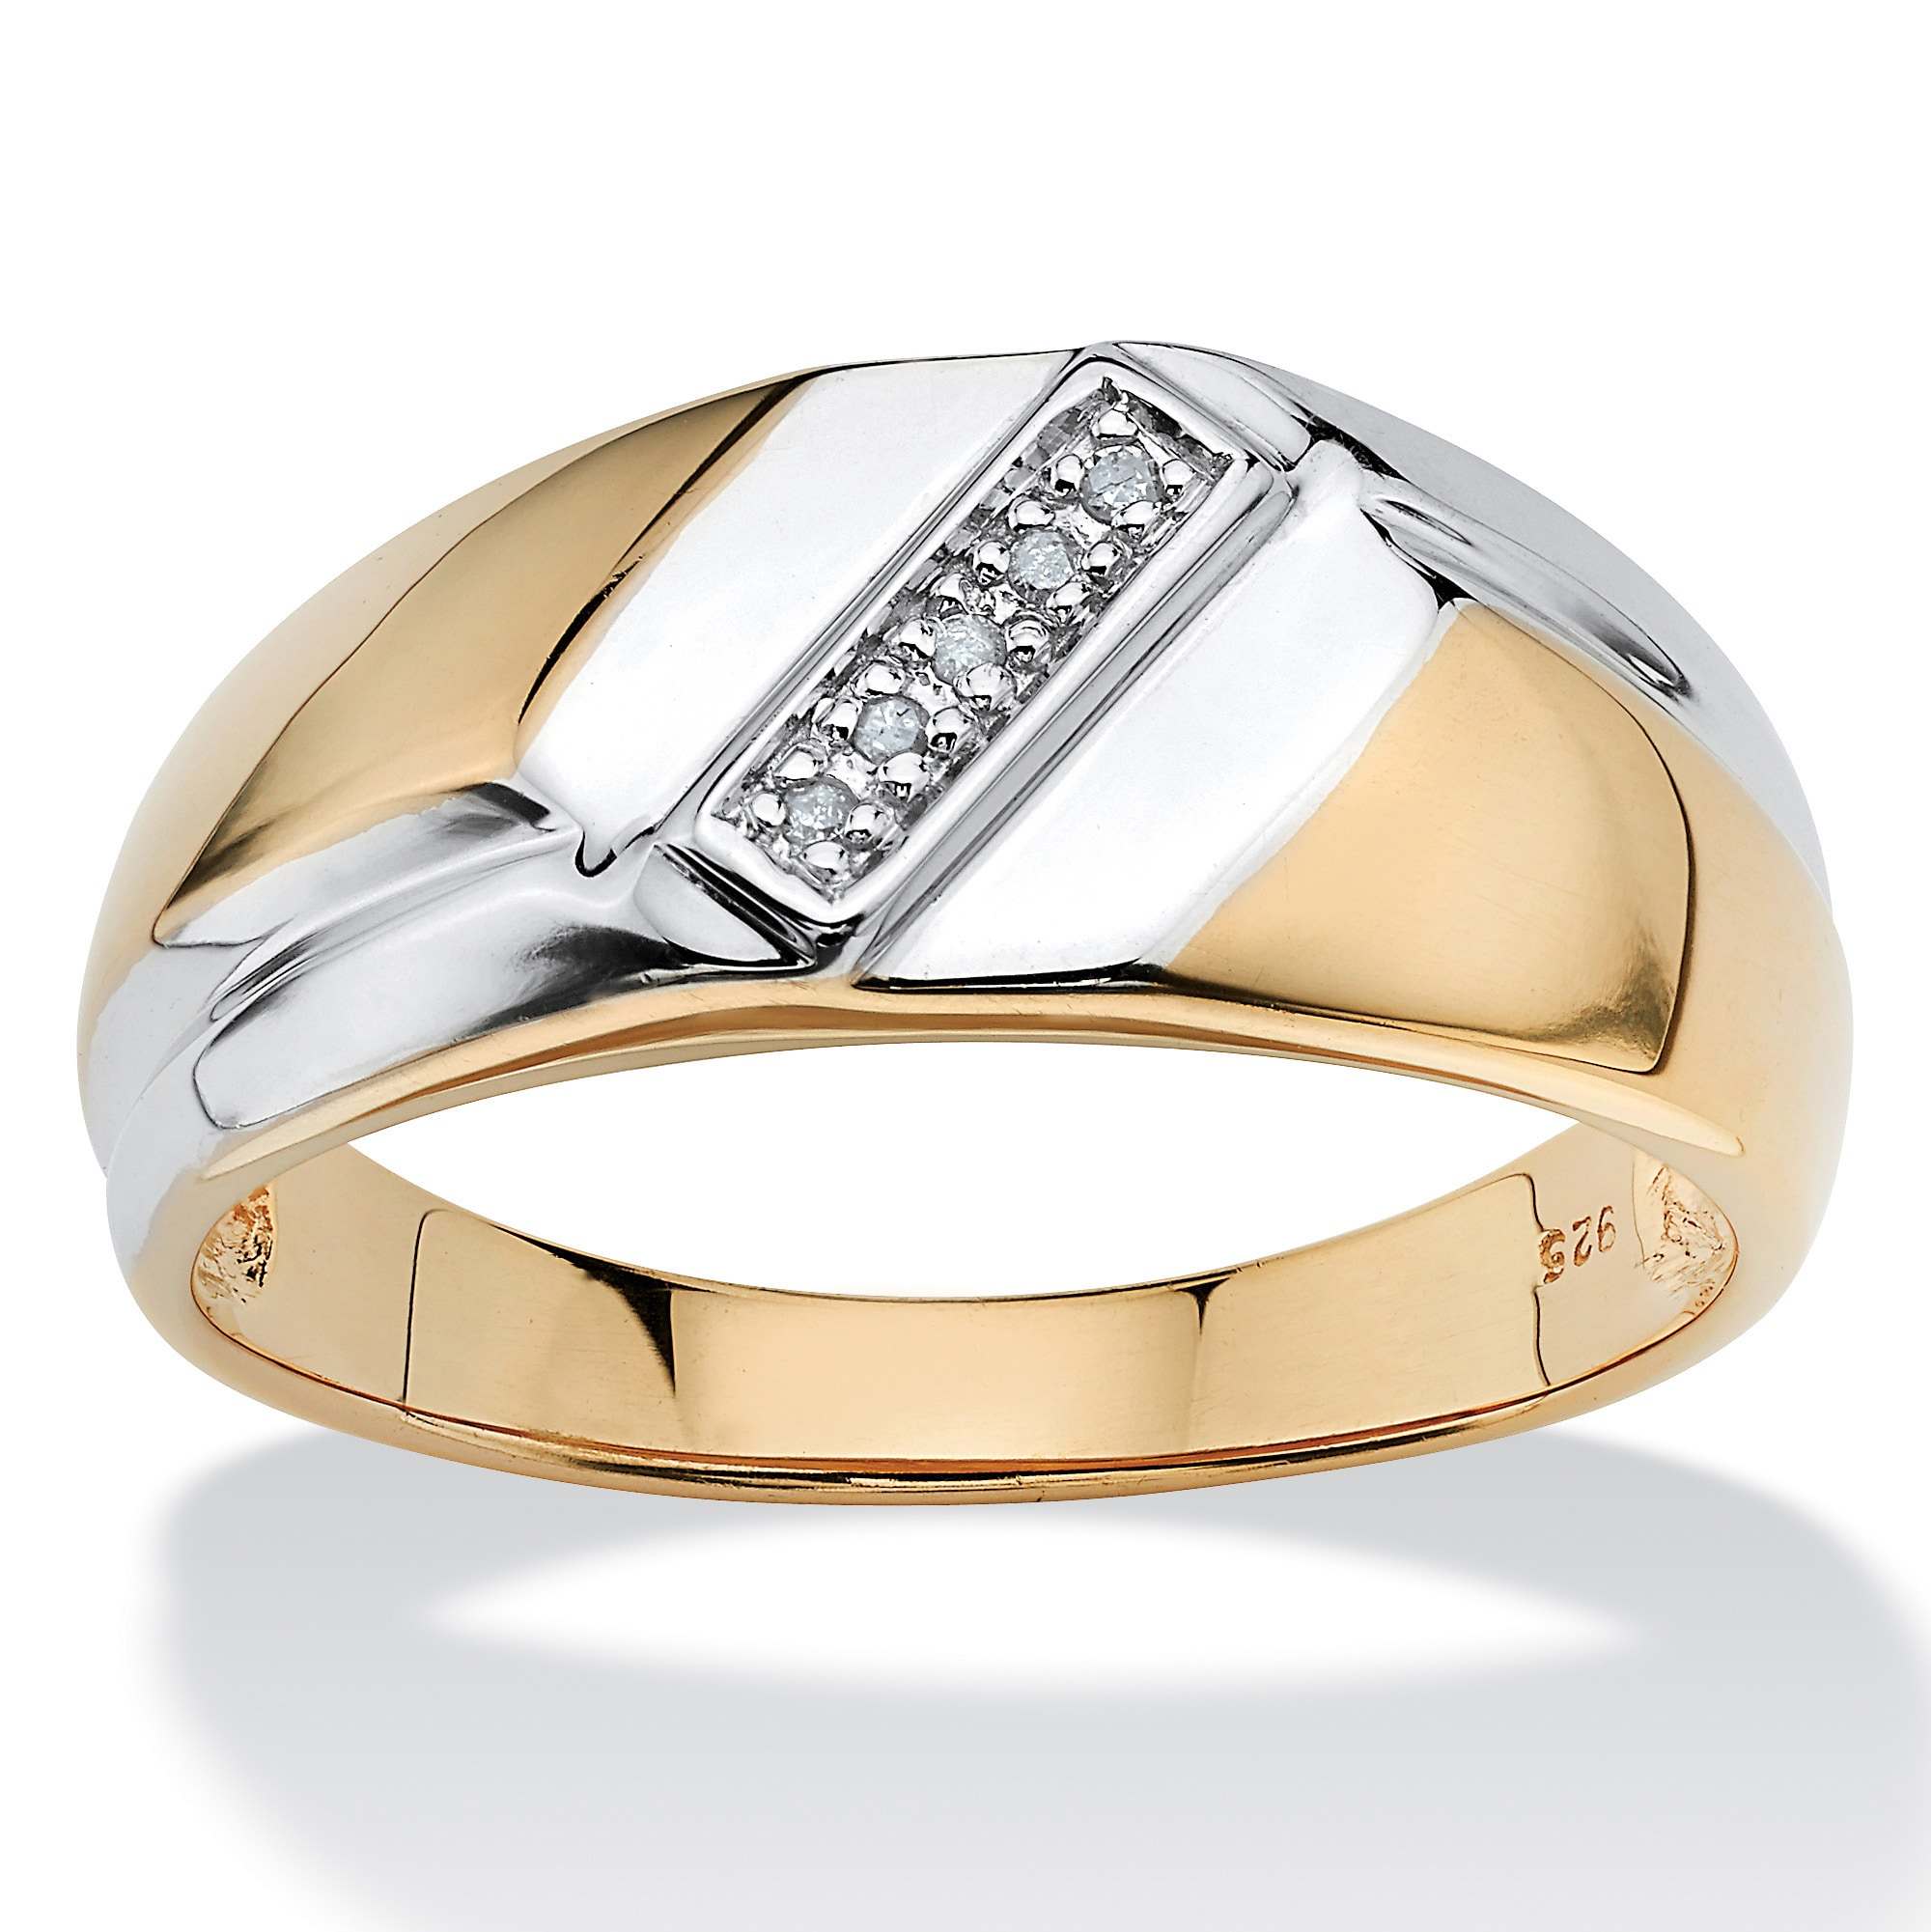 adel chefridi img diamonds white by products in ring bands with retail gold